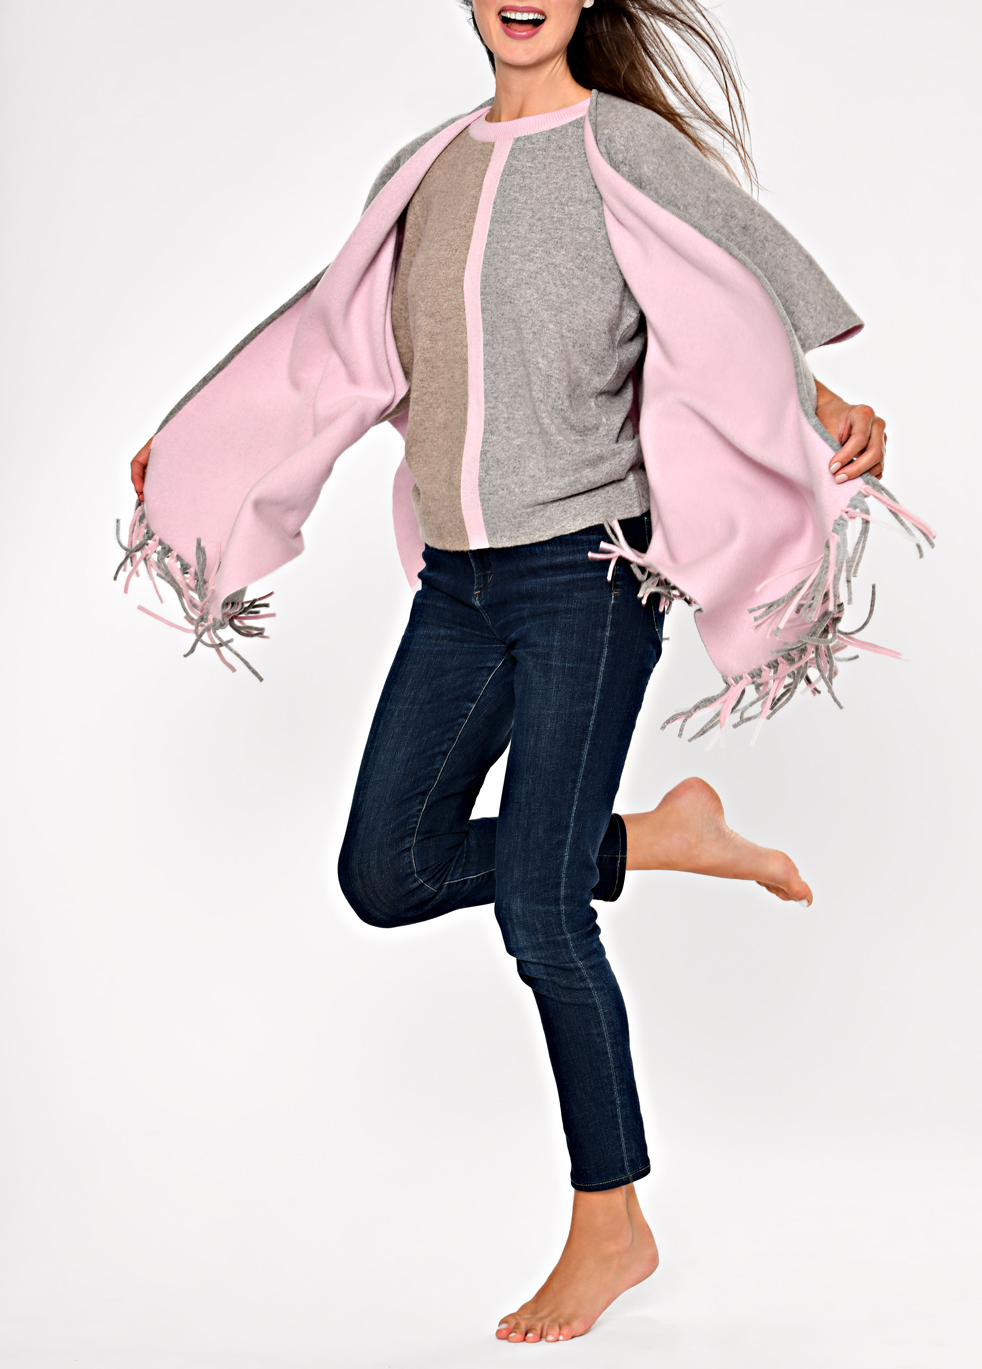 catalogue photography sweaters scarves